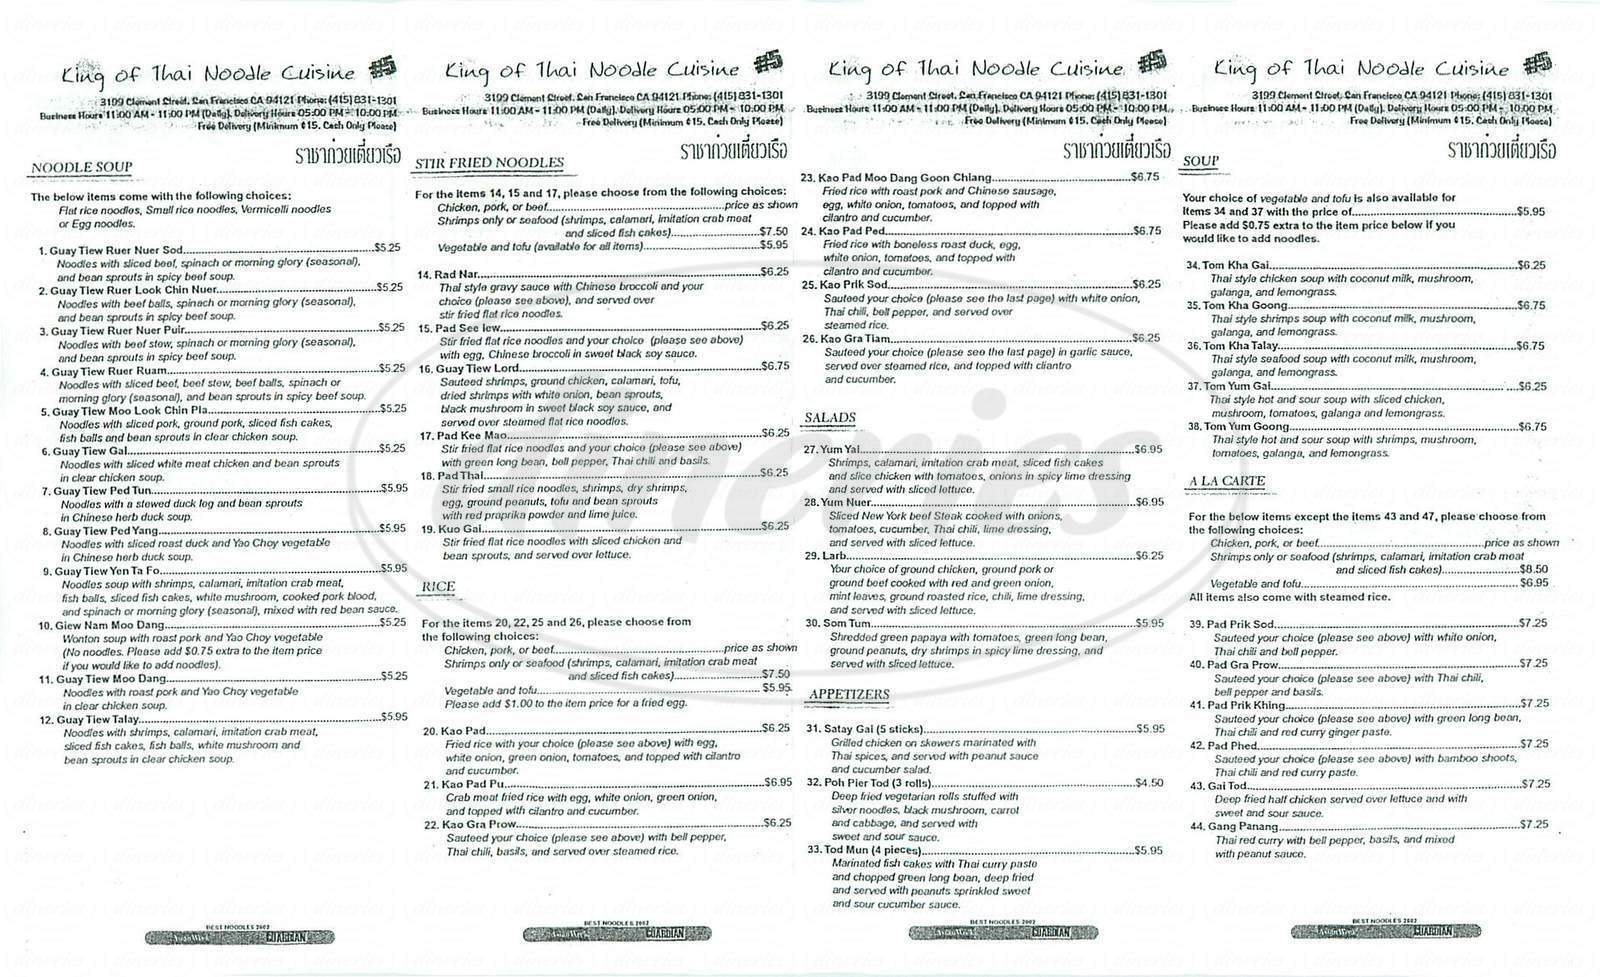 menu for King of Thai Noodle Café